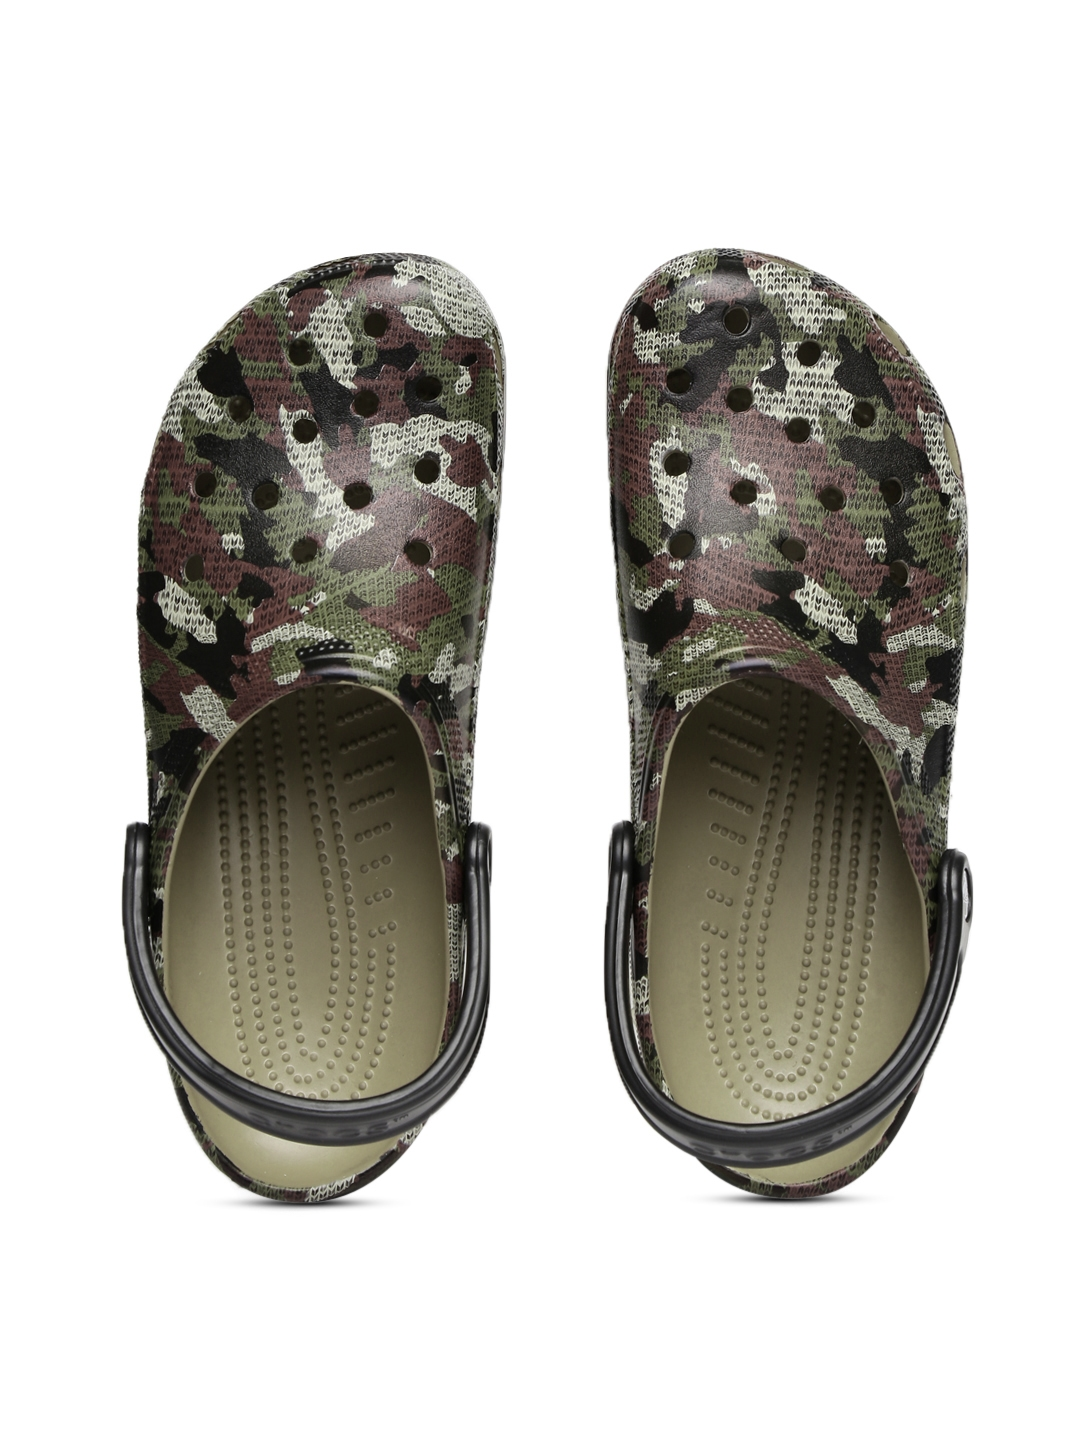 9c25d2eb86909 Buy Crocs Men Olive Green Printed Camo Clogs - Flip Flops for Men ...